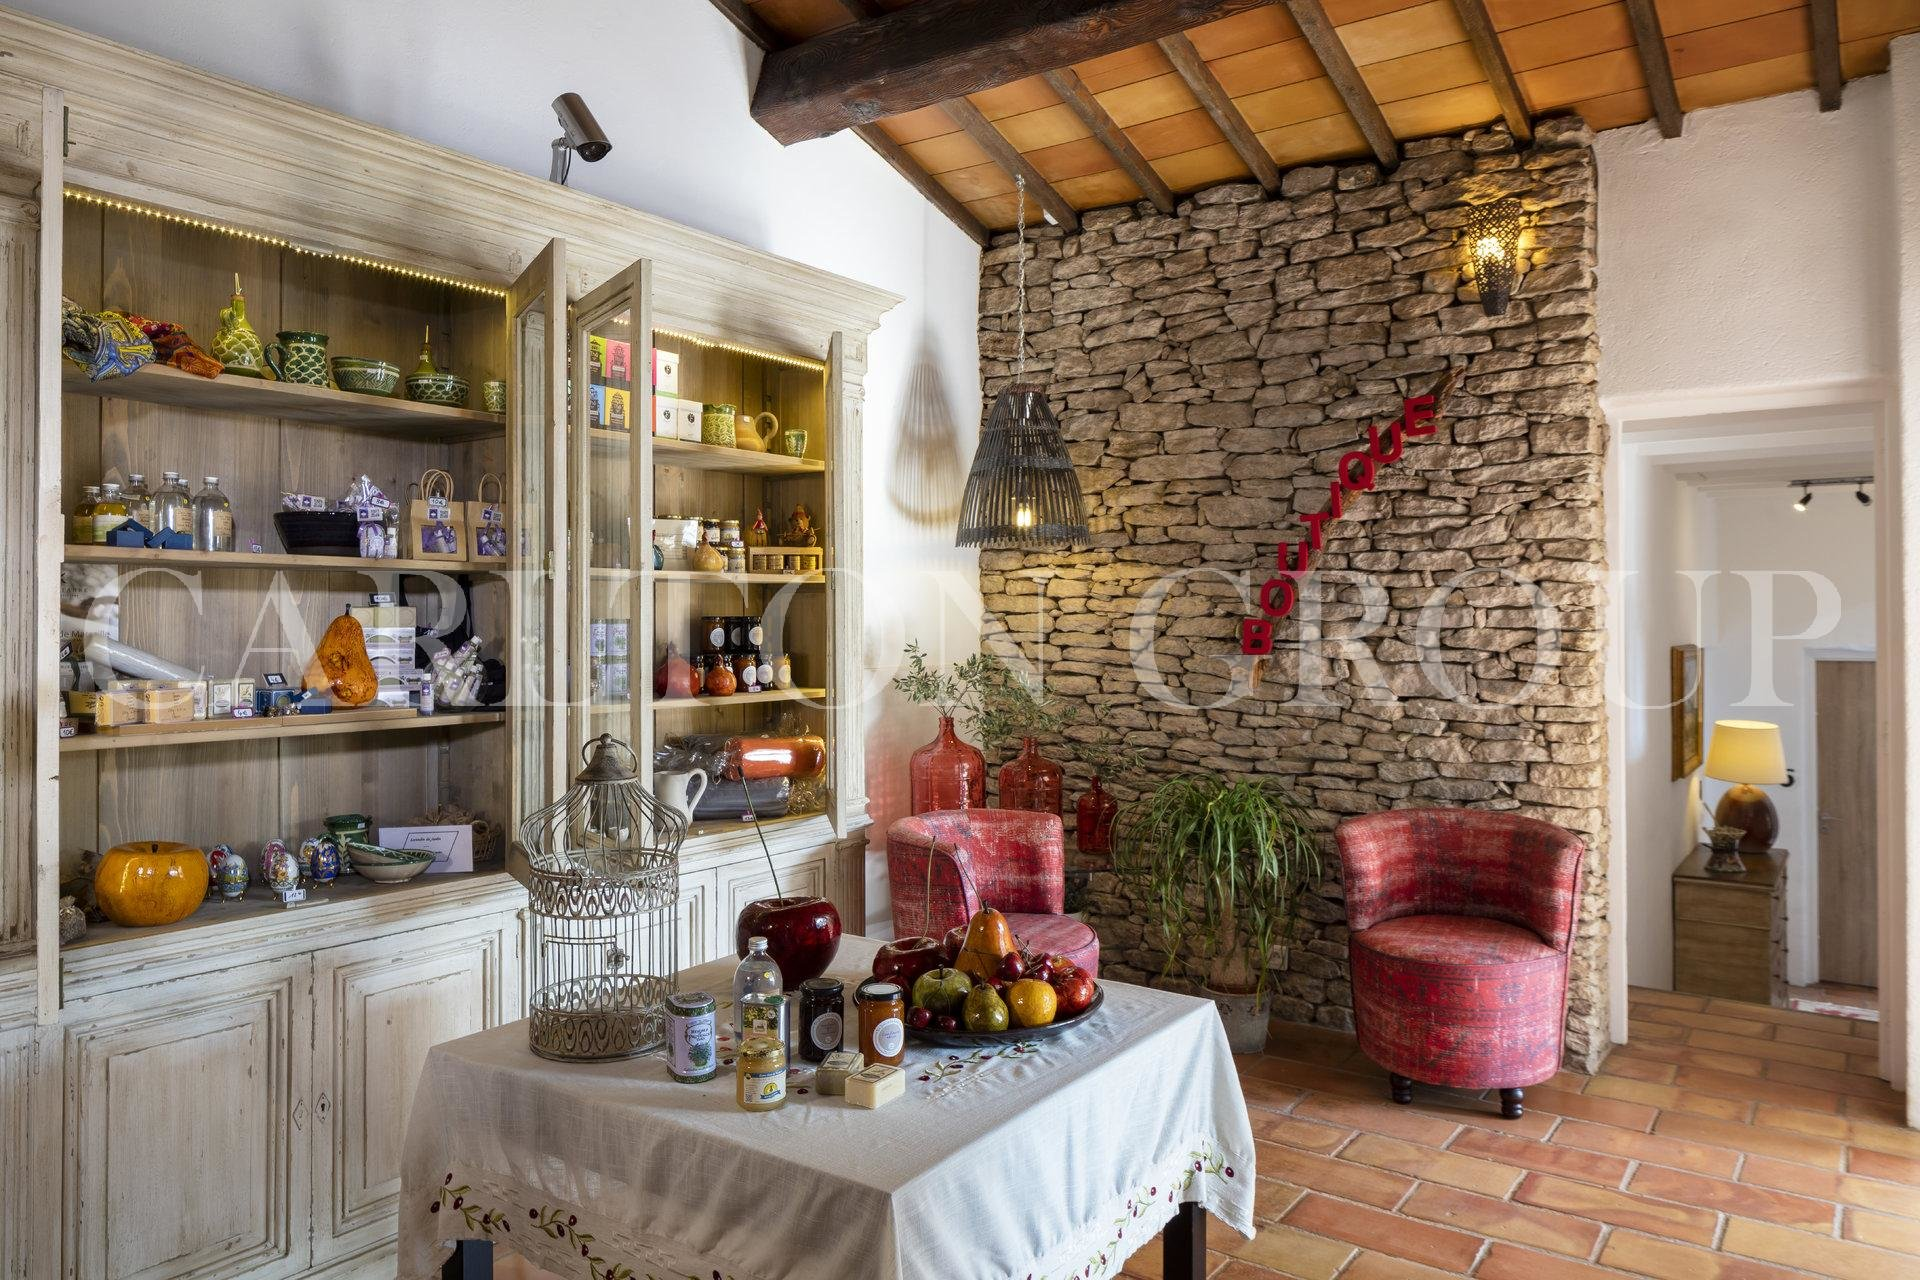 CHARMING HOTEL3*-RESTAURANT  IN THE LUBERON